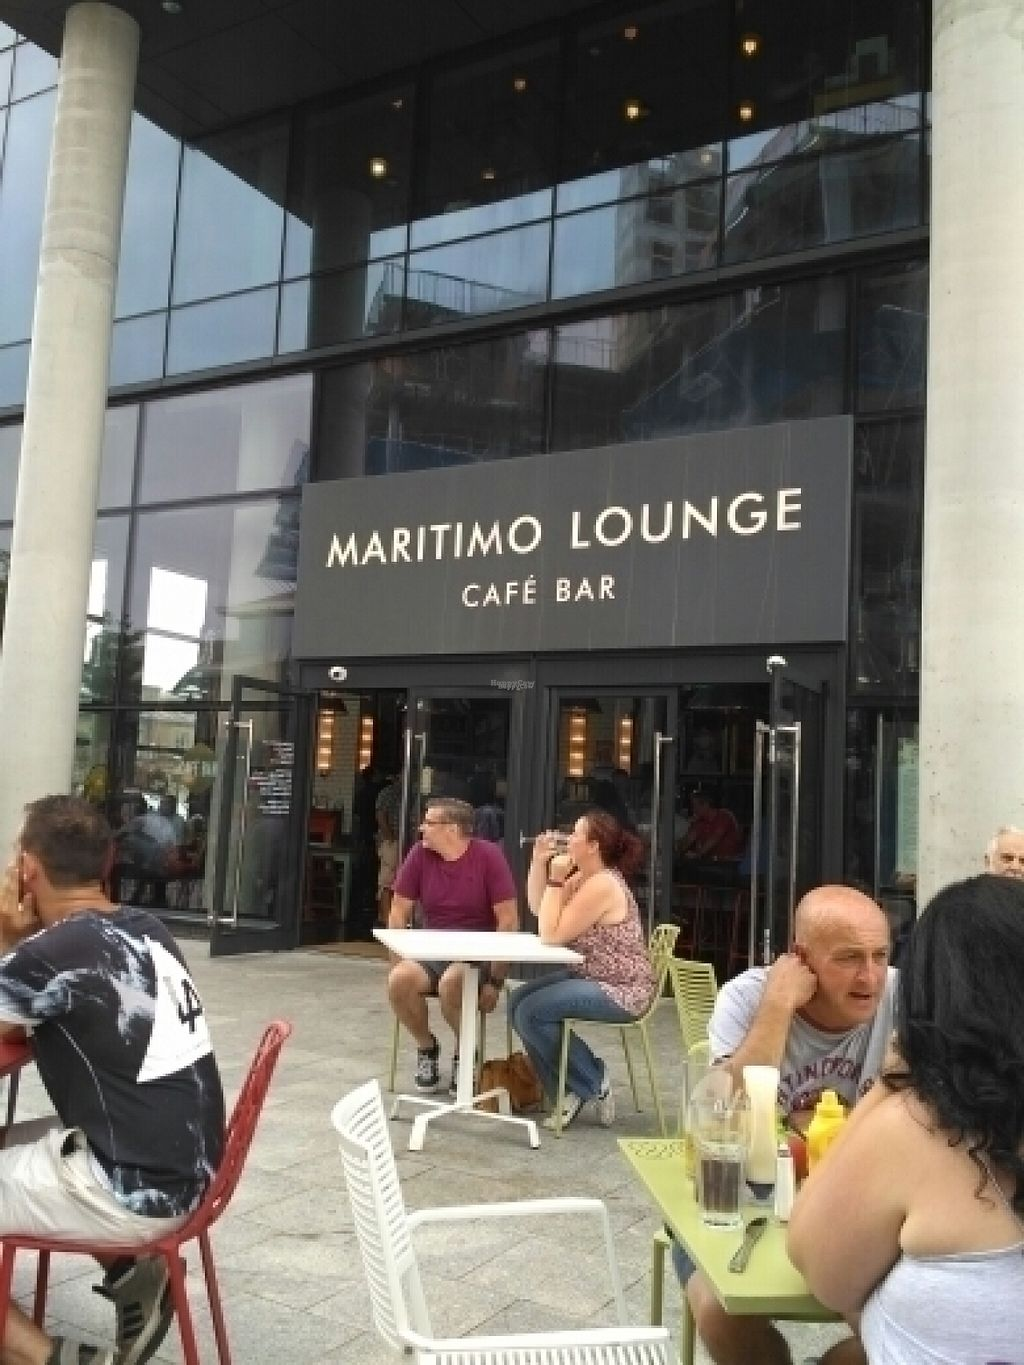 """Photo of Maritimo Lounge  by <a href=""""/members/profile/Miggi"""">Miggi</a> <br/>cafe  <br/> August 14, 2016  - <a href='/contact/abuse/image/78610/168637'>Report</a>"""